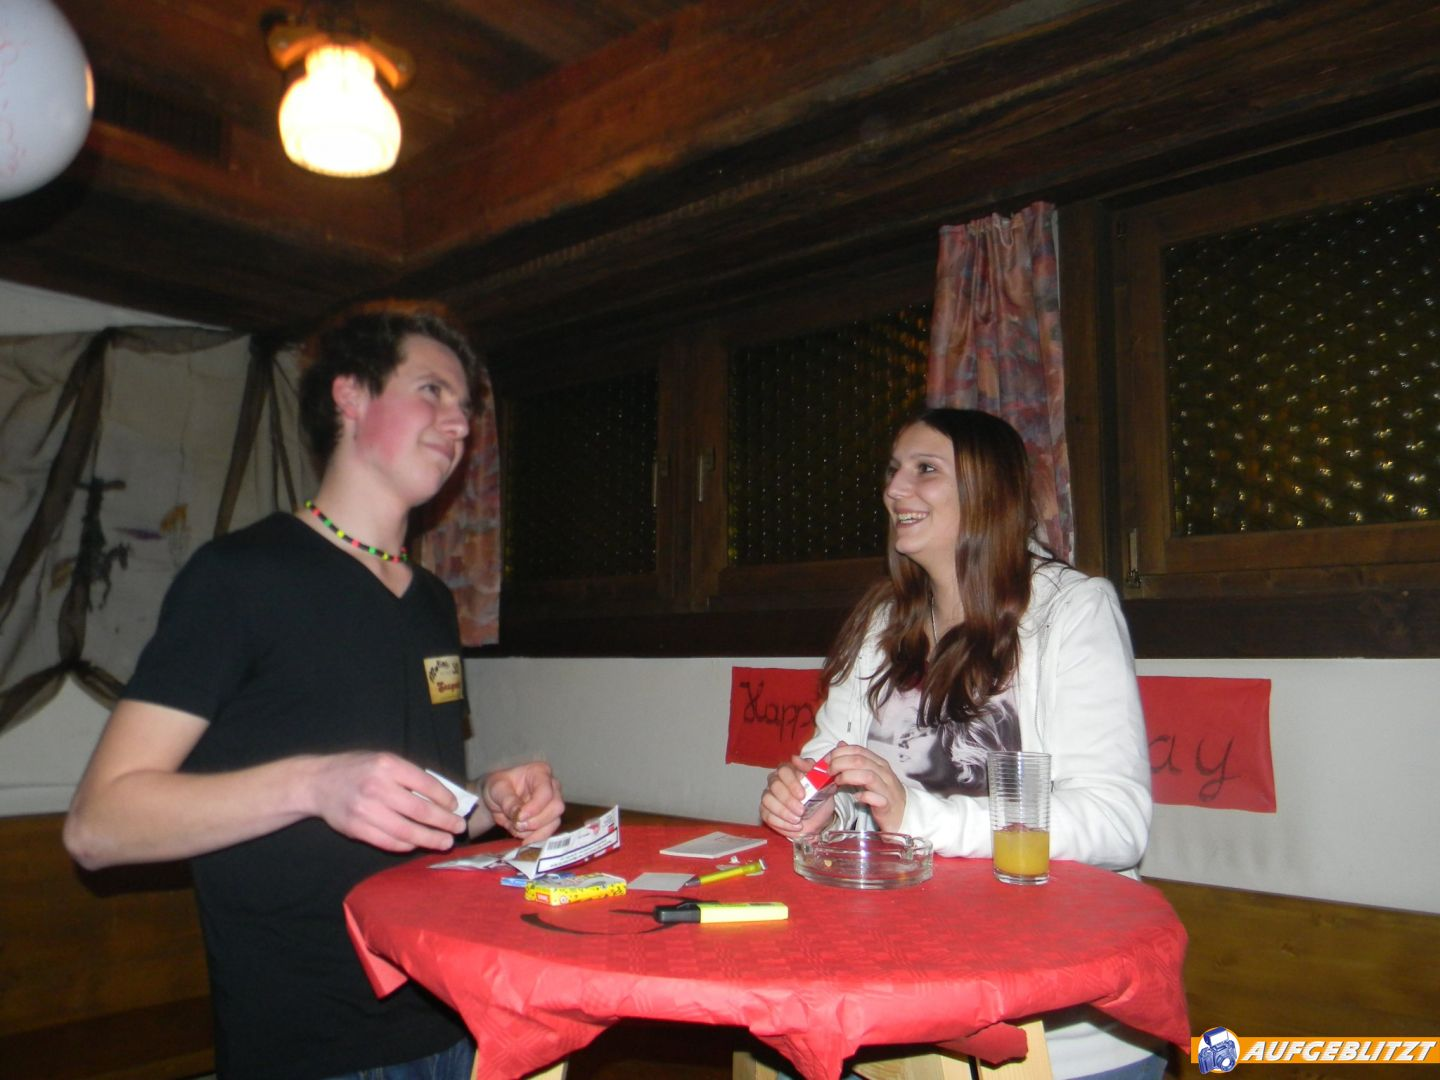 Speeddating in debant. Partnervermittlung umgebung in